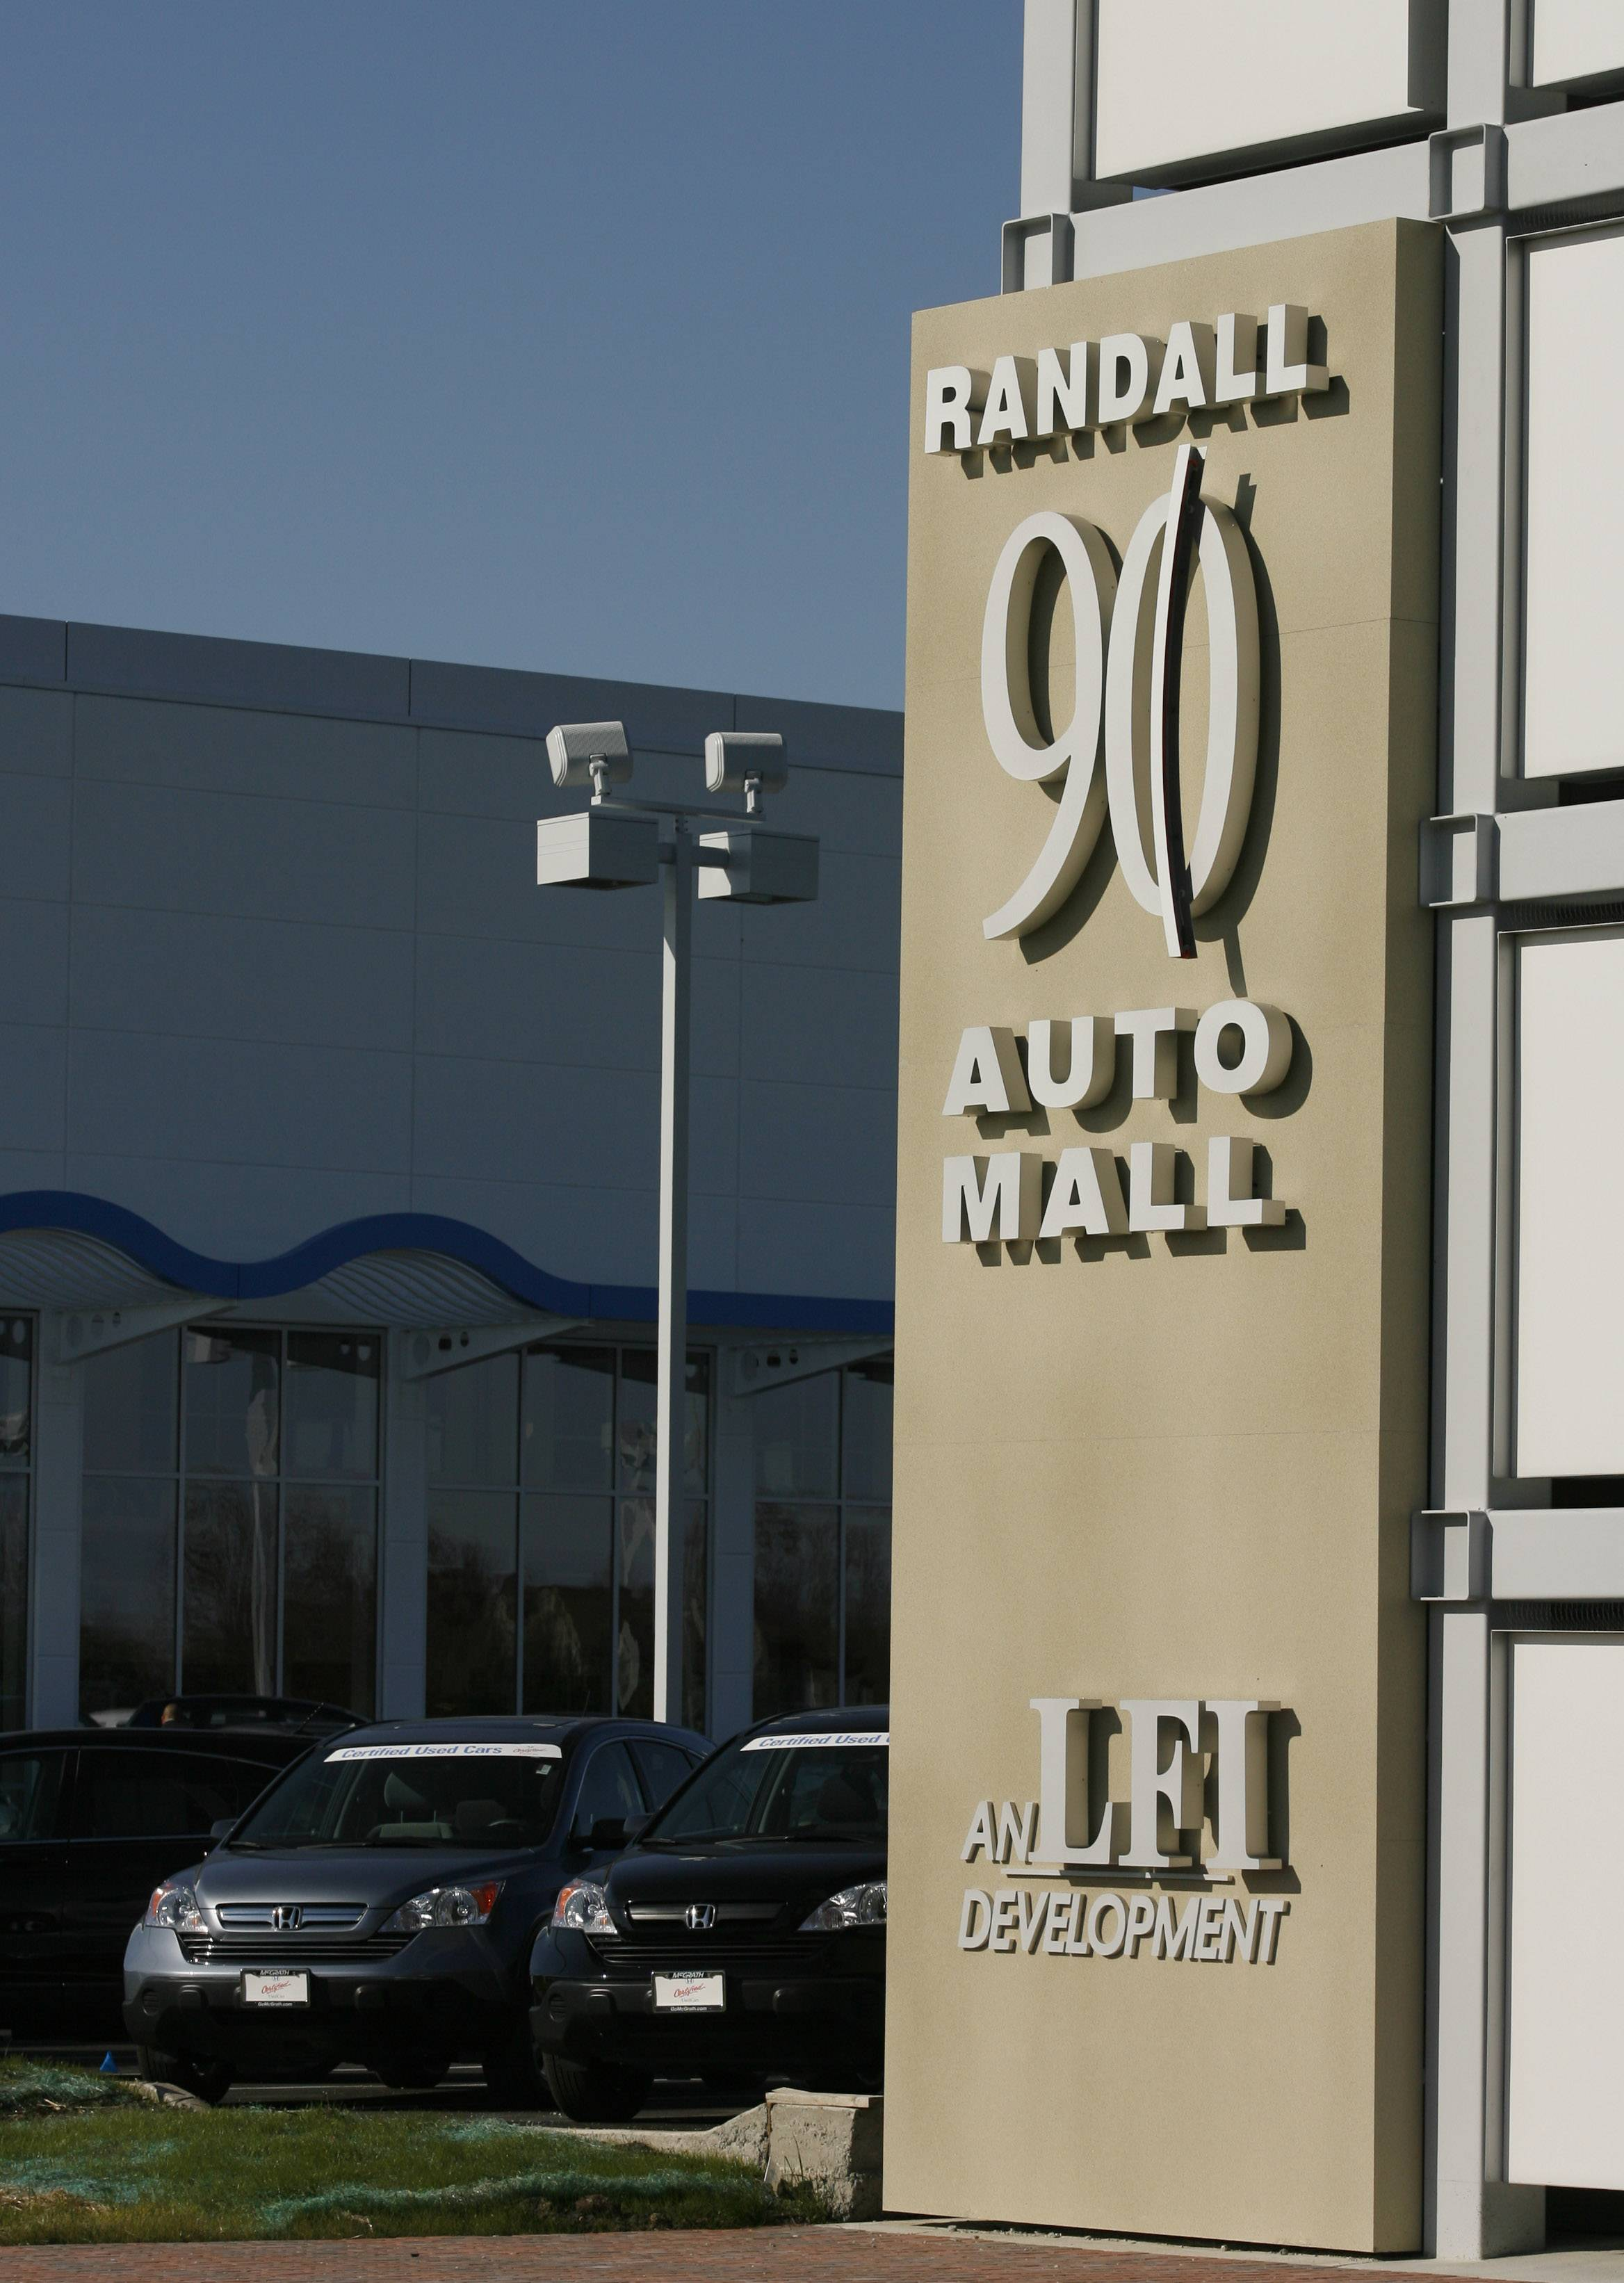 City: Despite Elgin auto mall foreclosure, land use still for car dealers